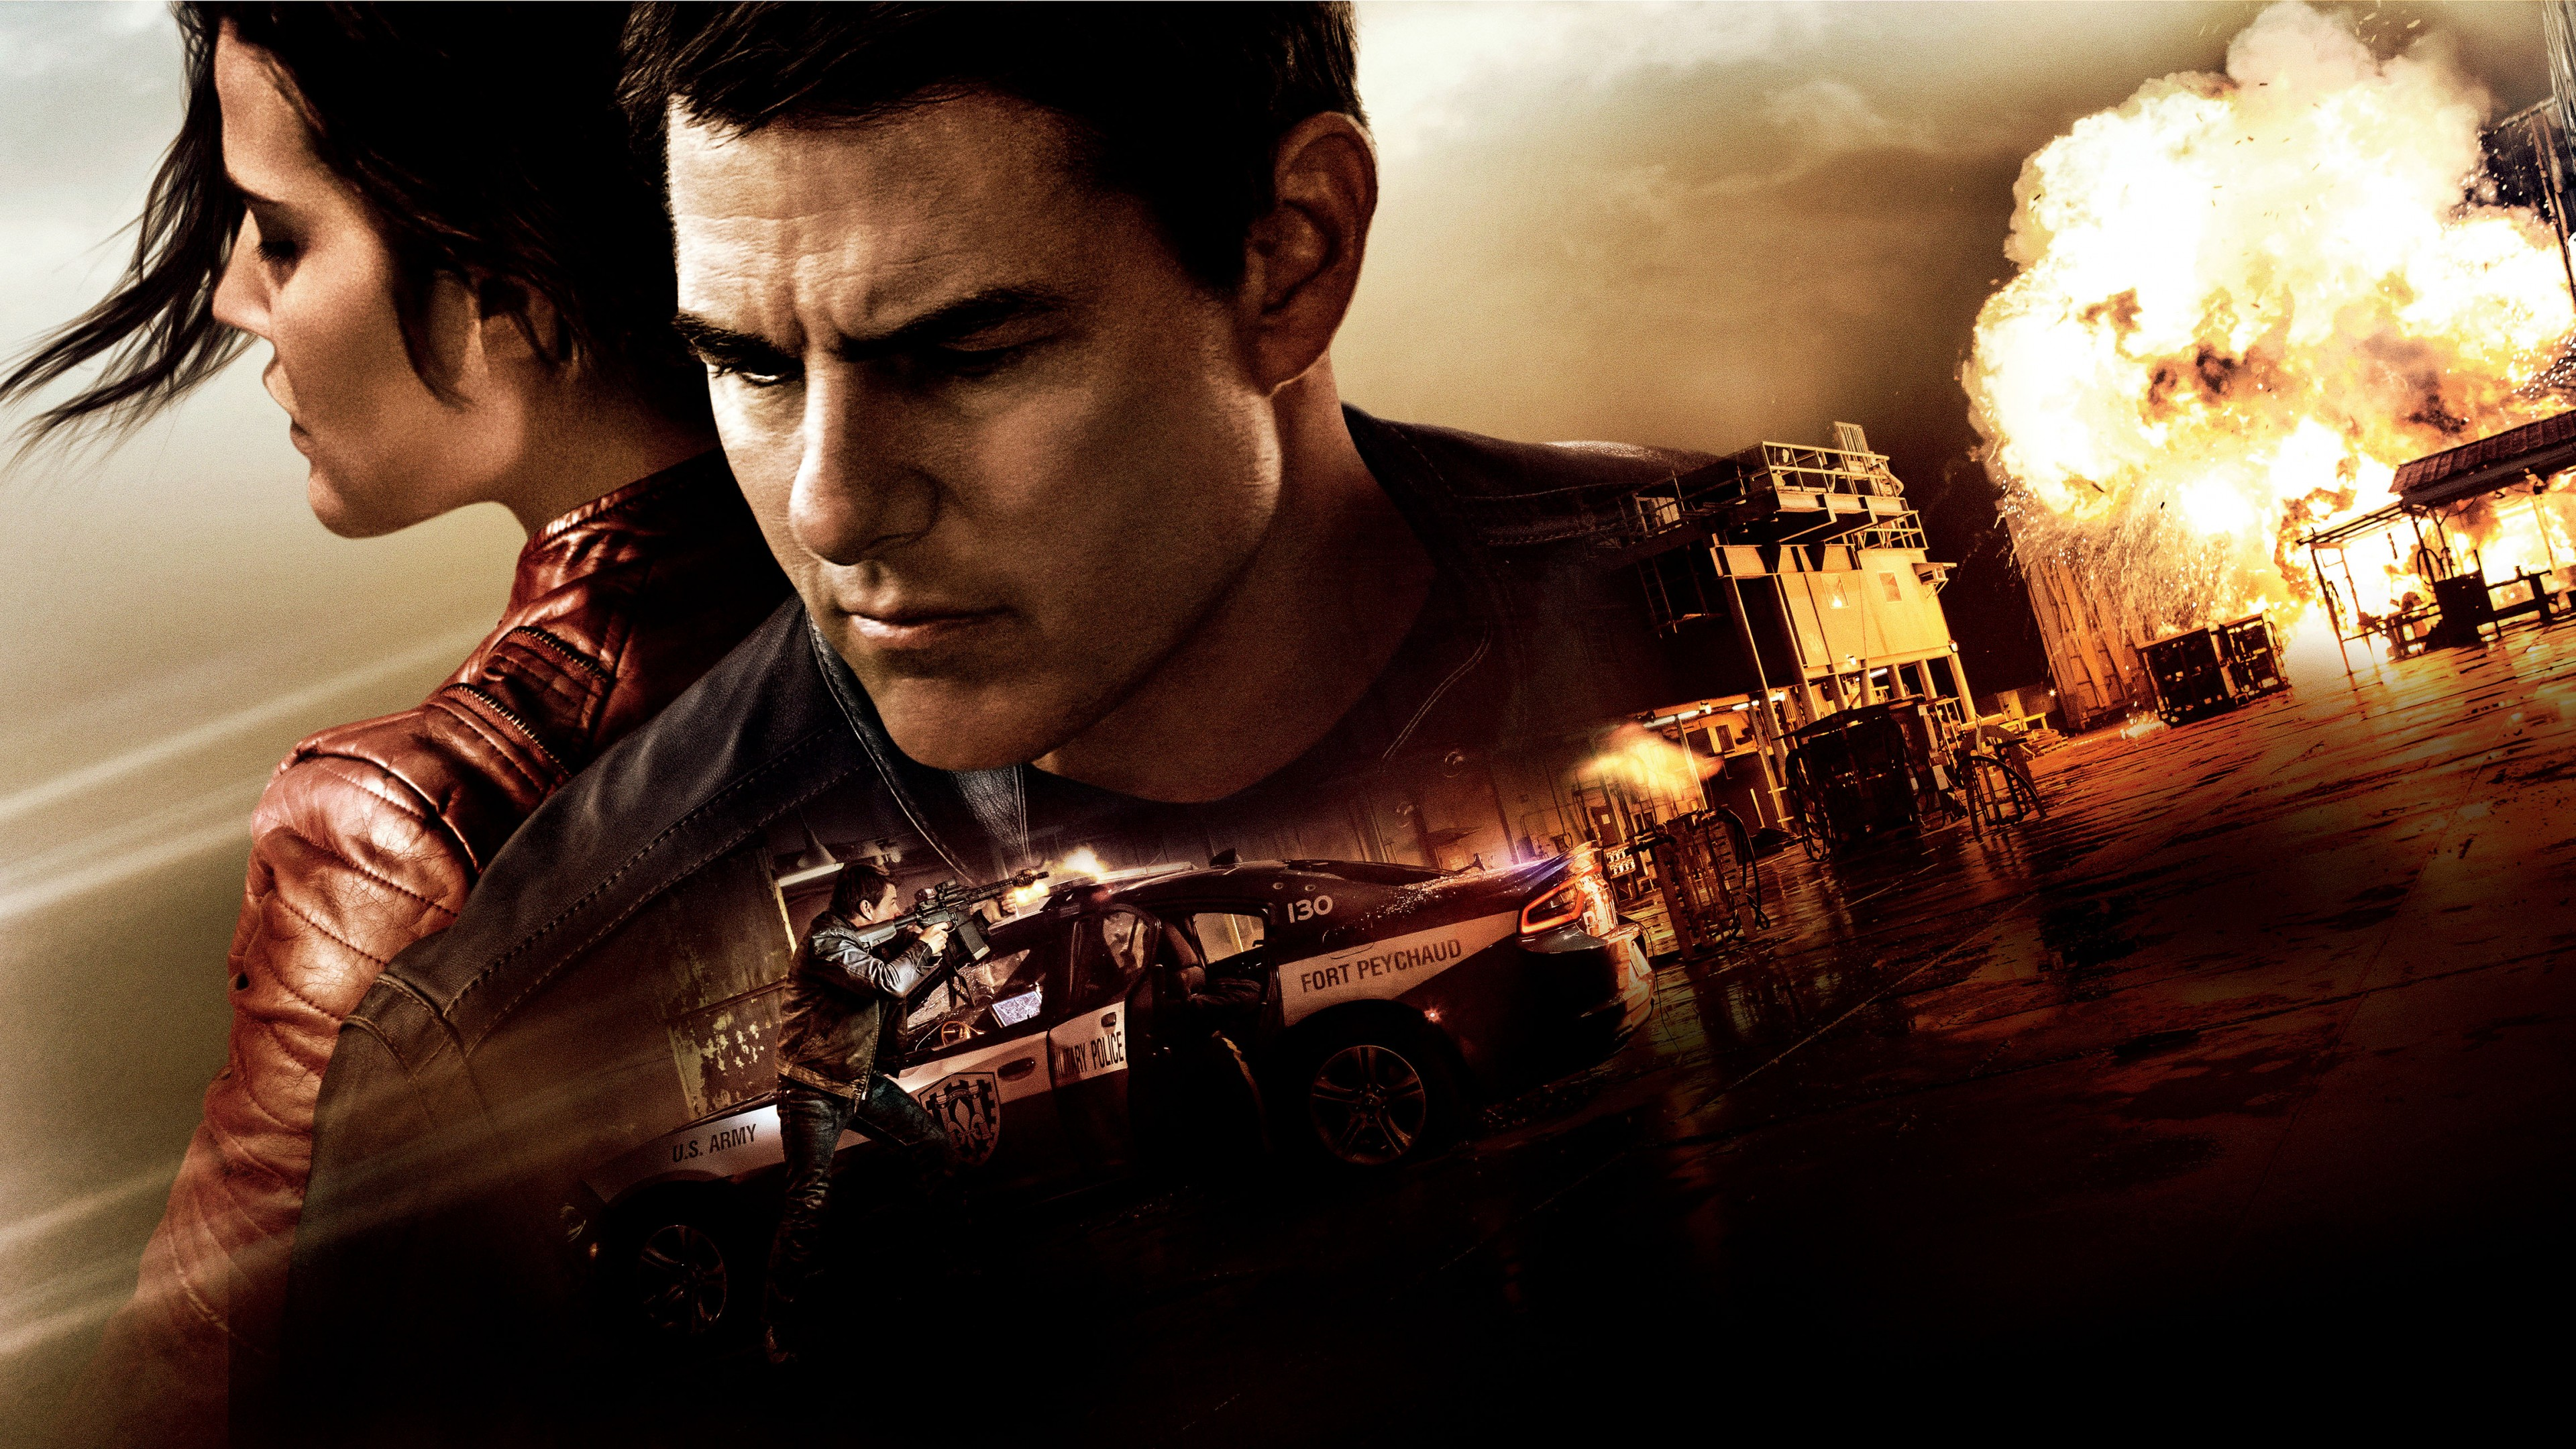 Jack Reacher Never Go Back 4k Ultra HD Wallpaper Background 3840x2160